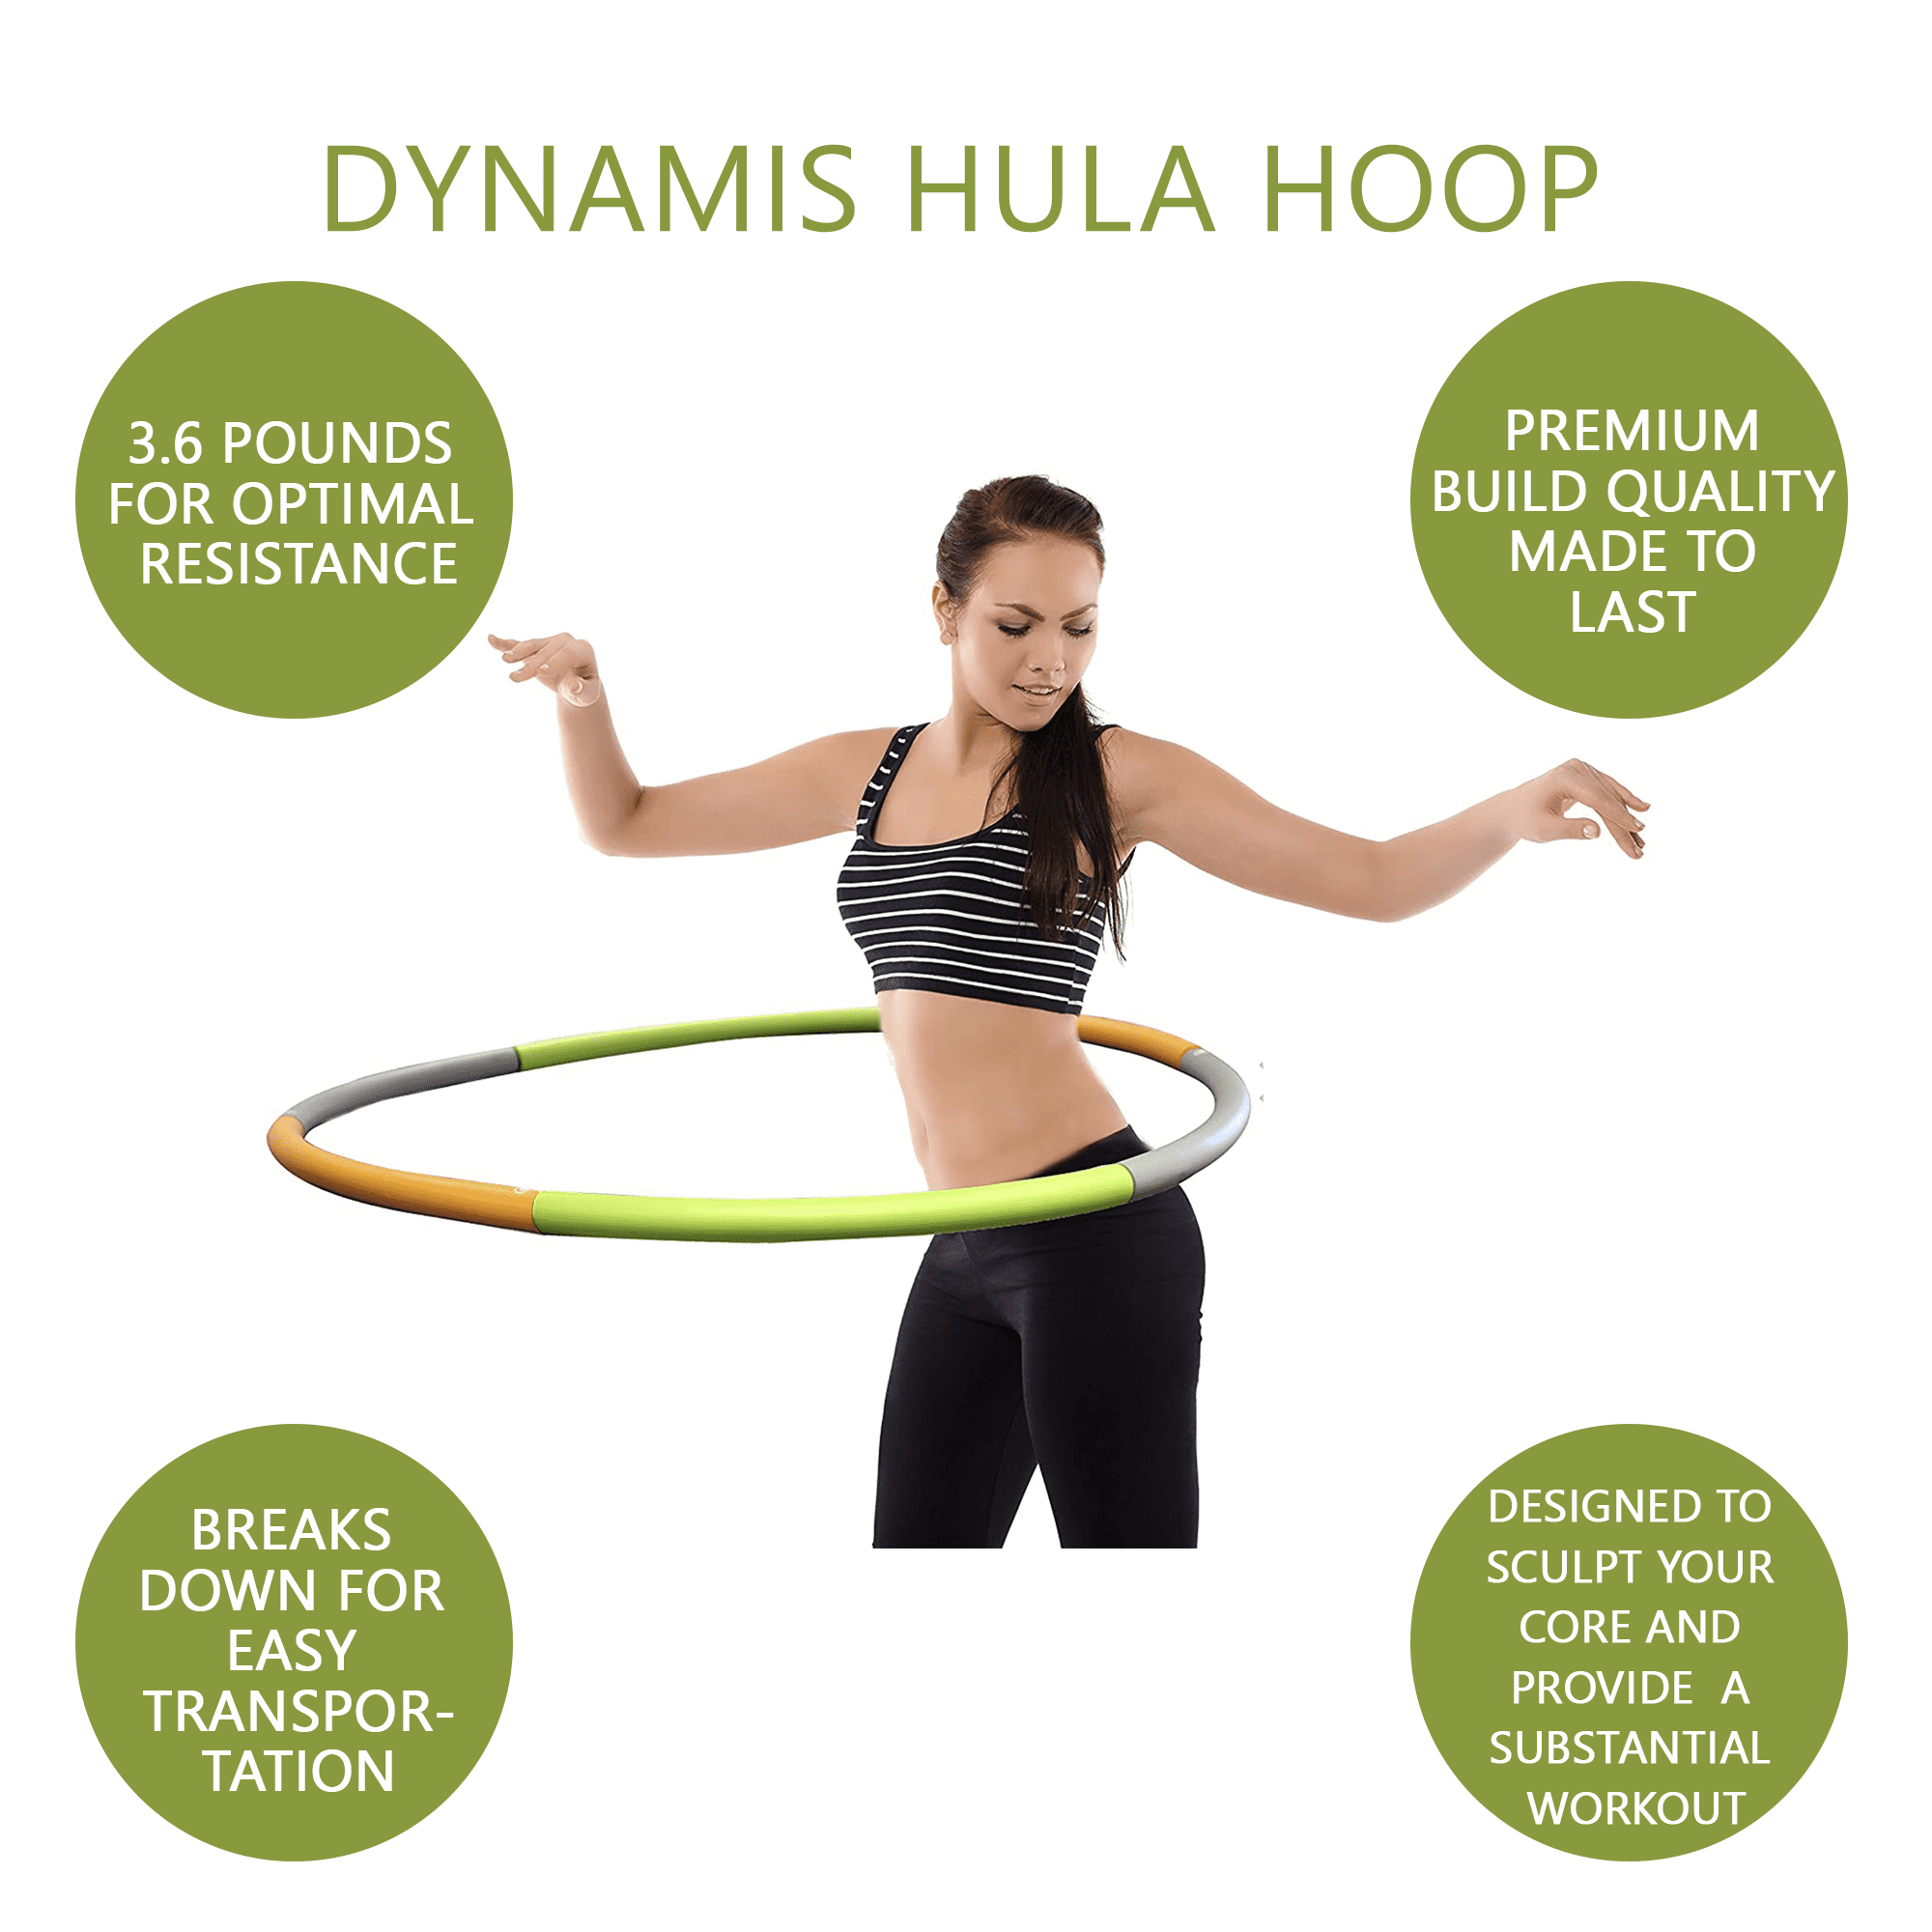 HOMELEX Weighted Hoola Hoop for 8 Section Detachable Belly Fat Burner Jump Rope for Fitness